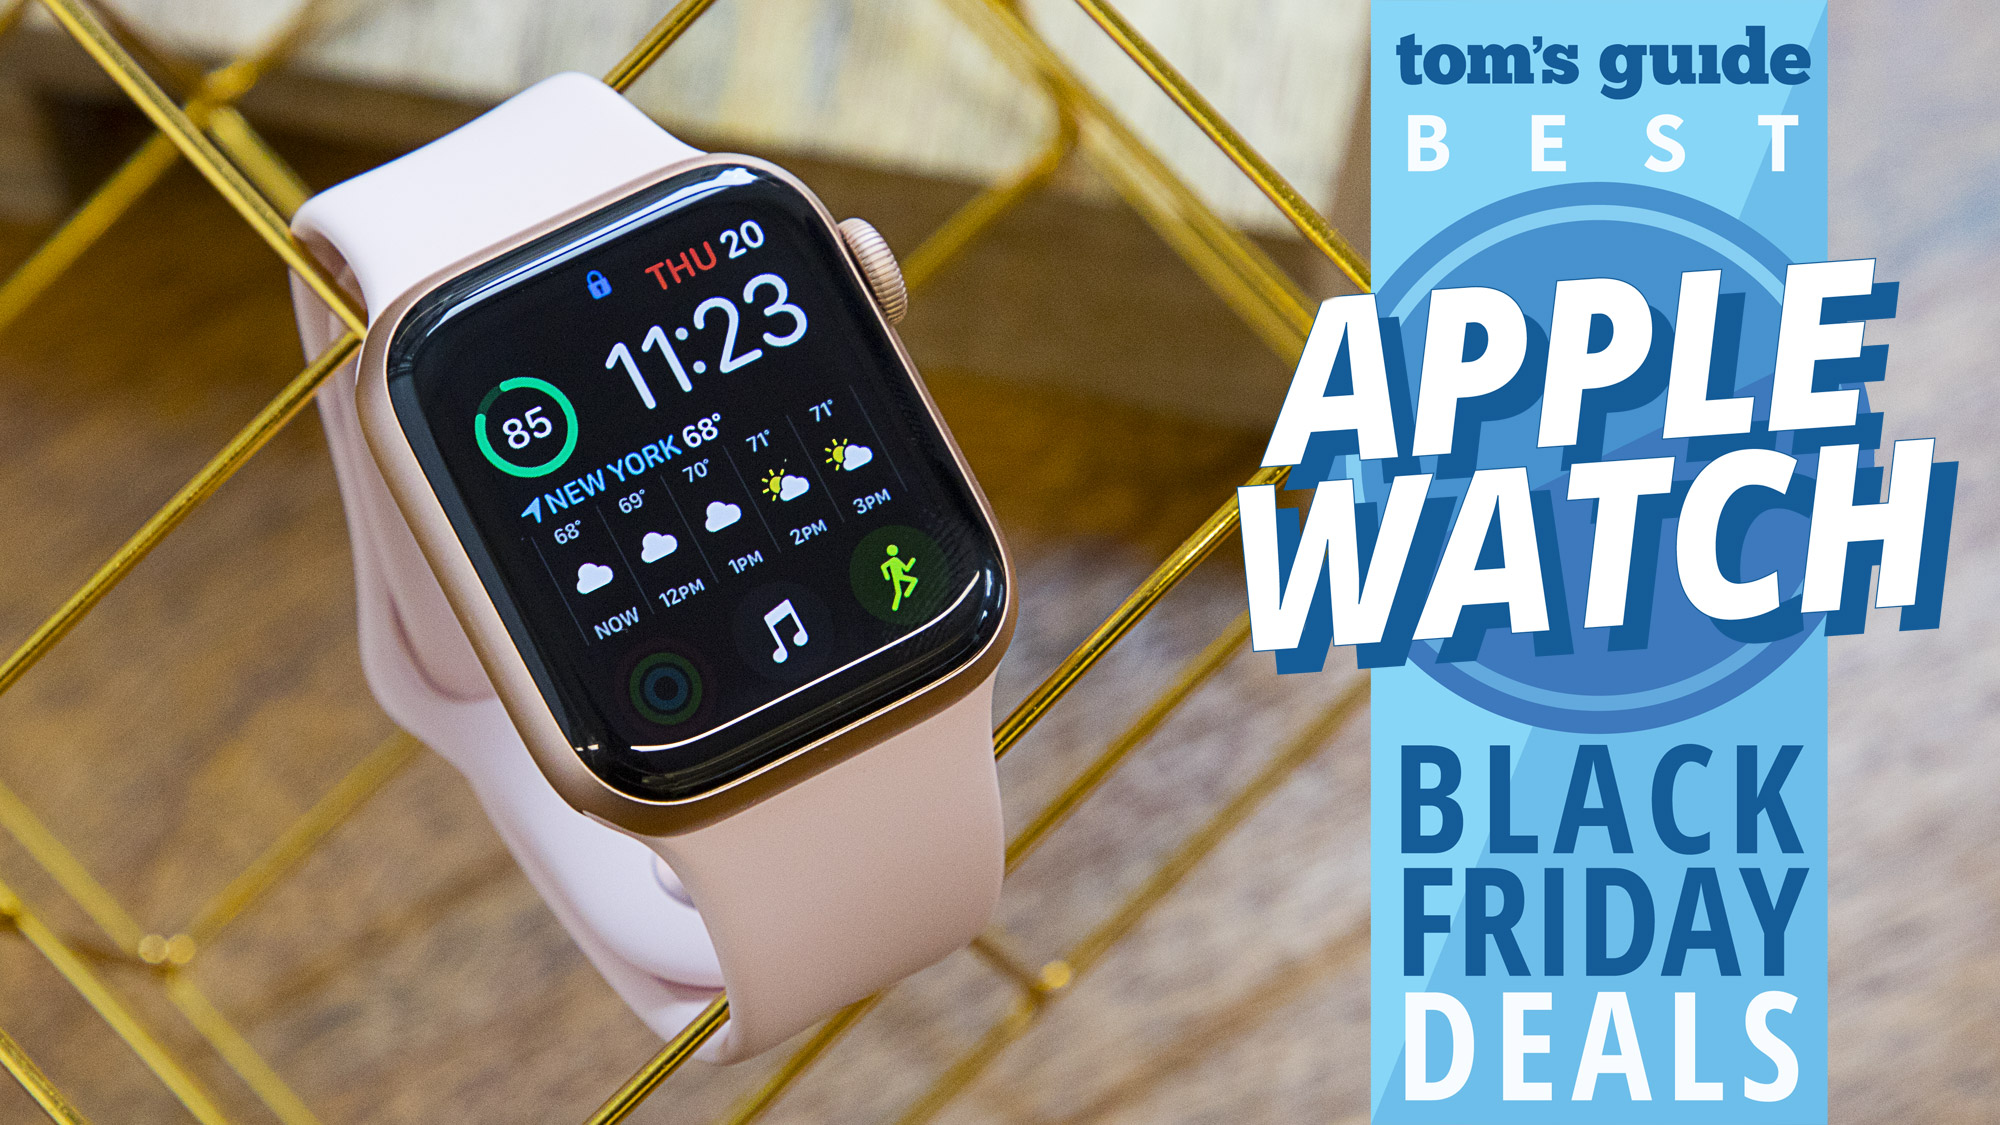 Black Friday Deals On Apple Watch Series 1 Shop Clothing Shoes Online